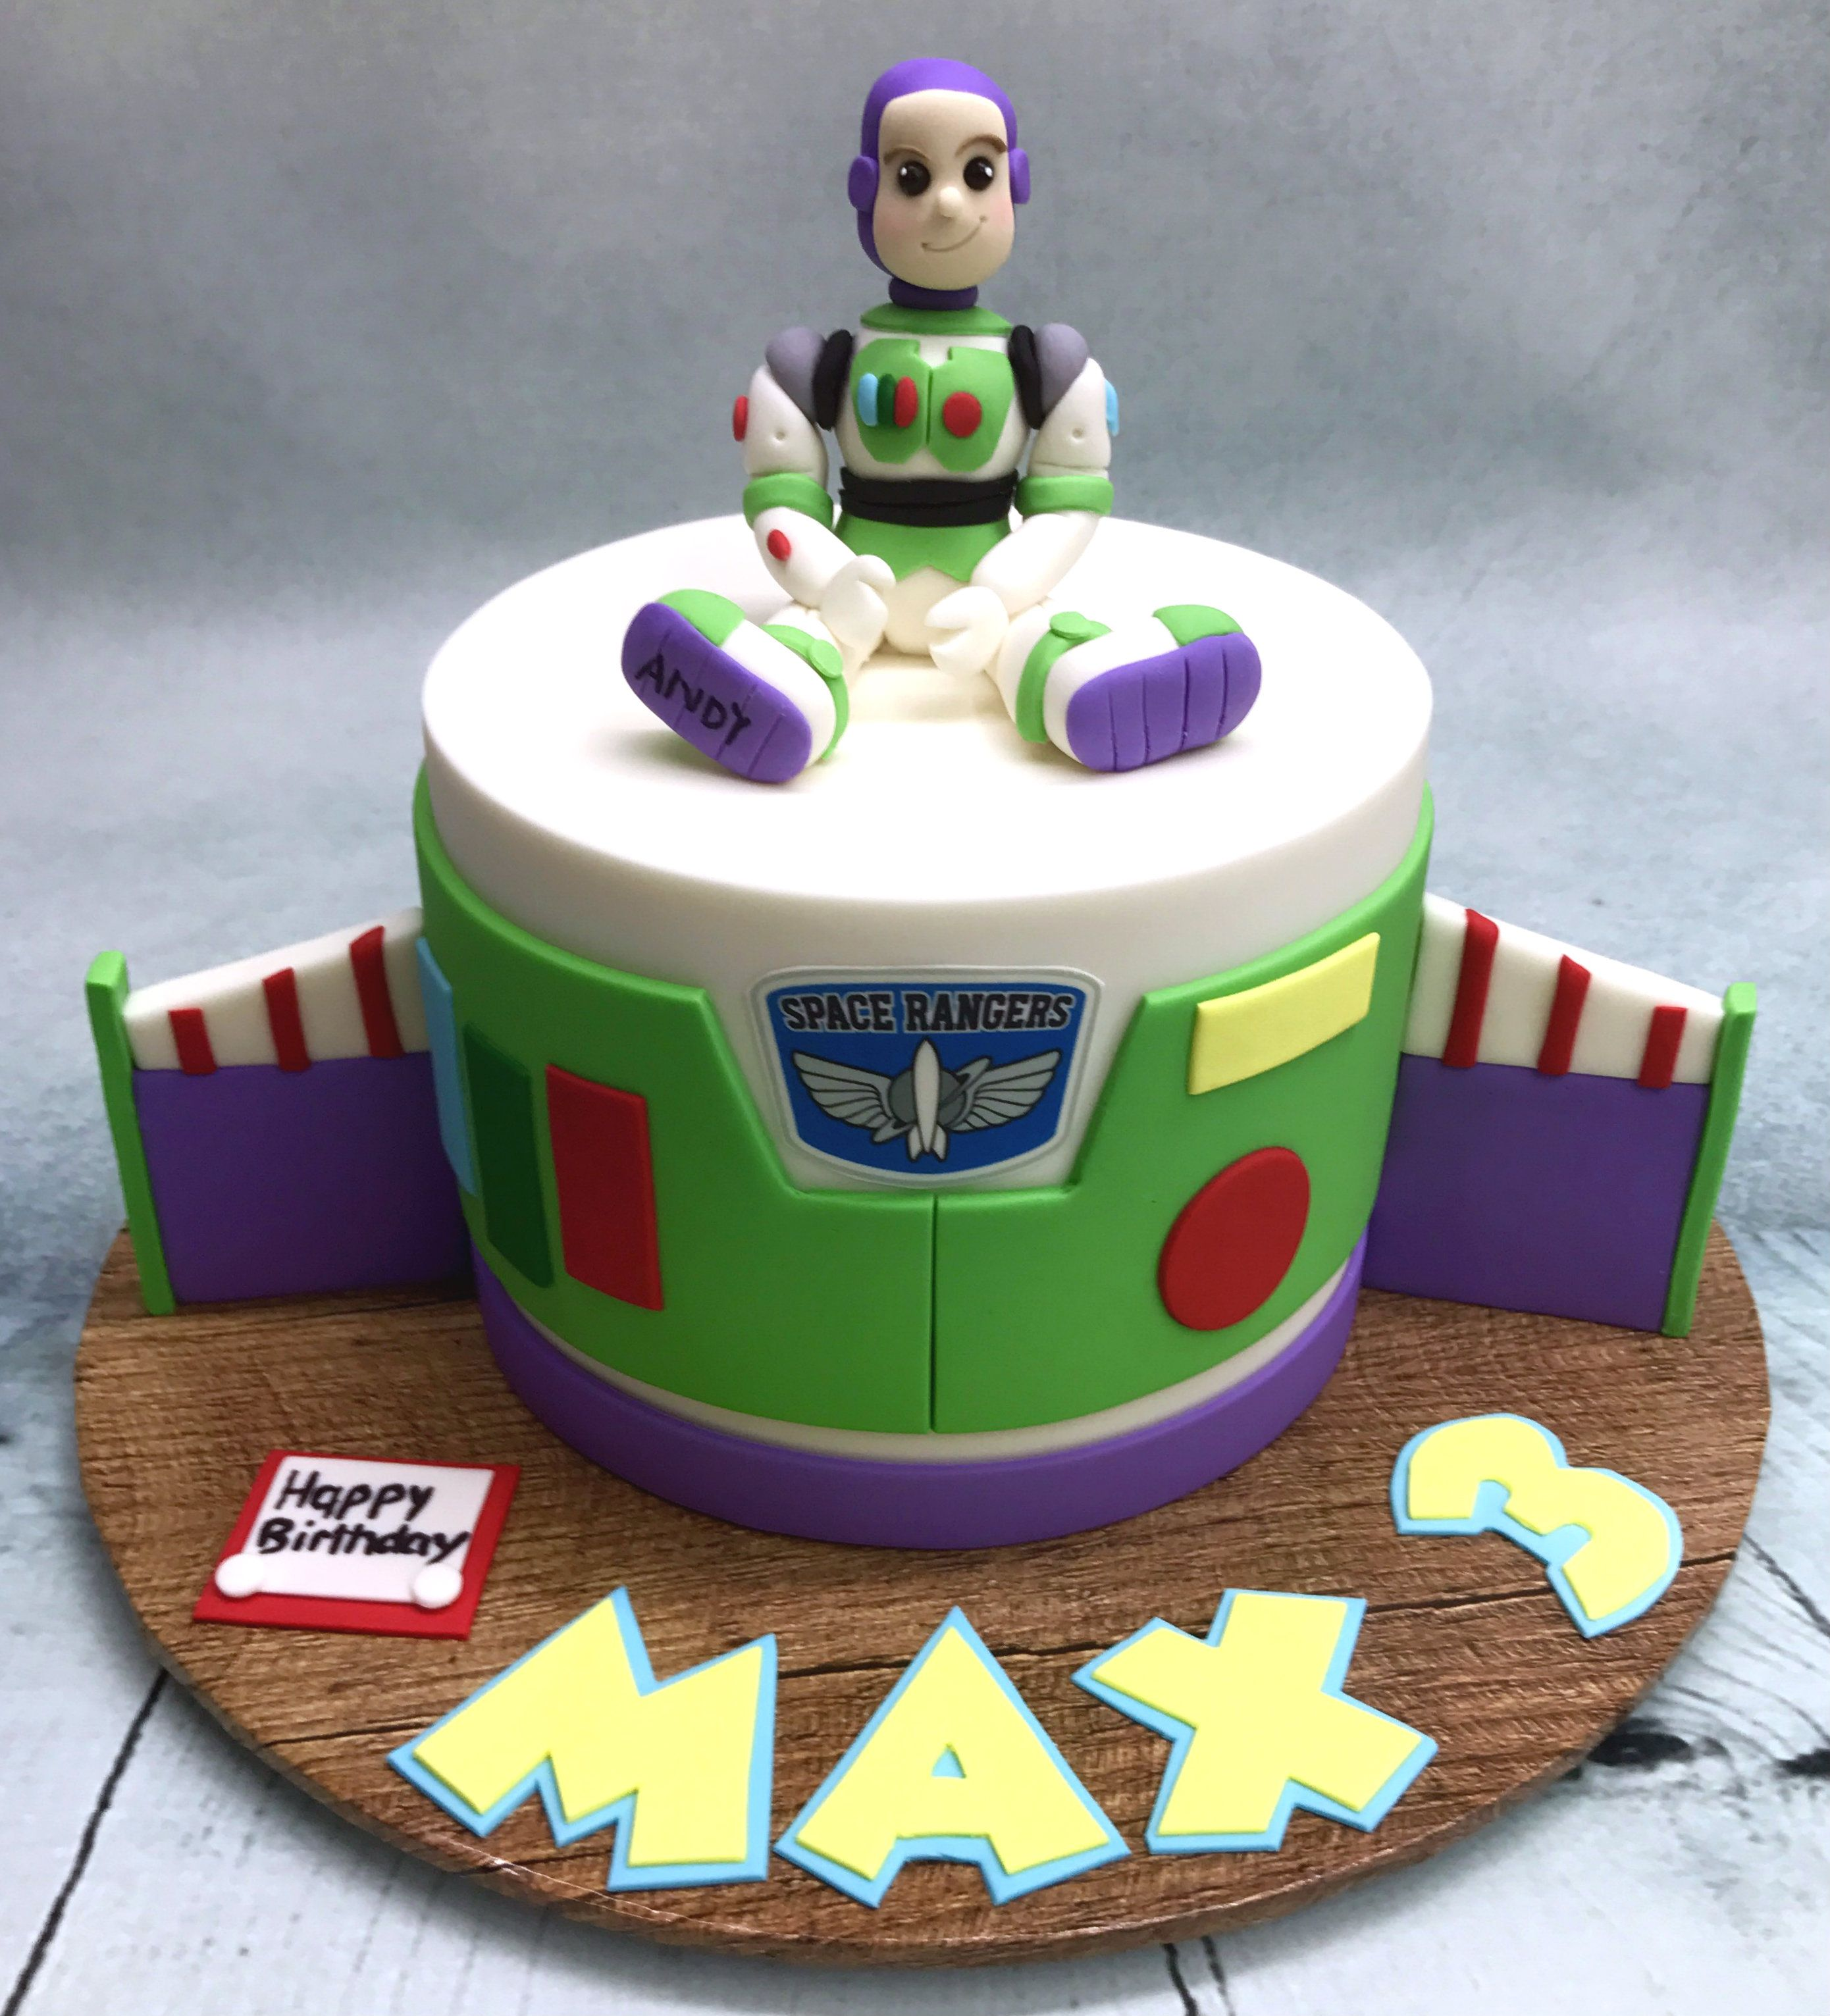 Buzz Lightyear Birthday Cake With Images Toy Story Birthday